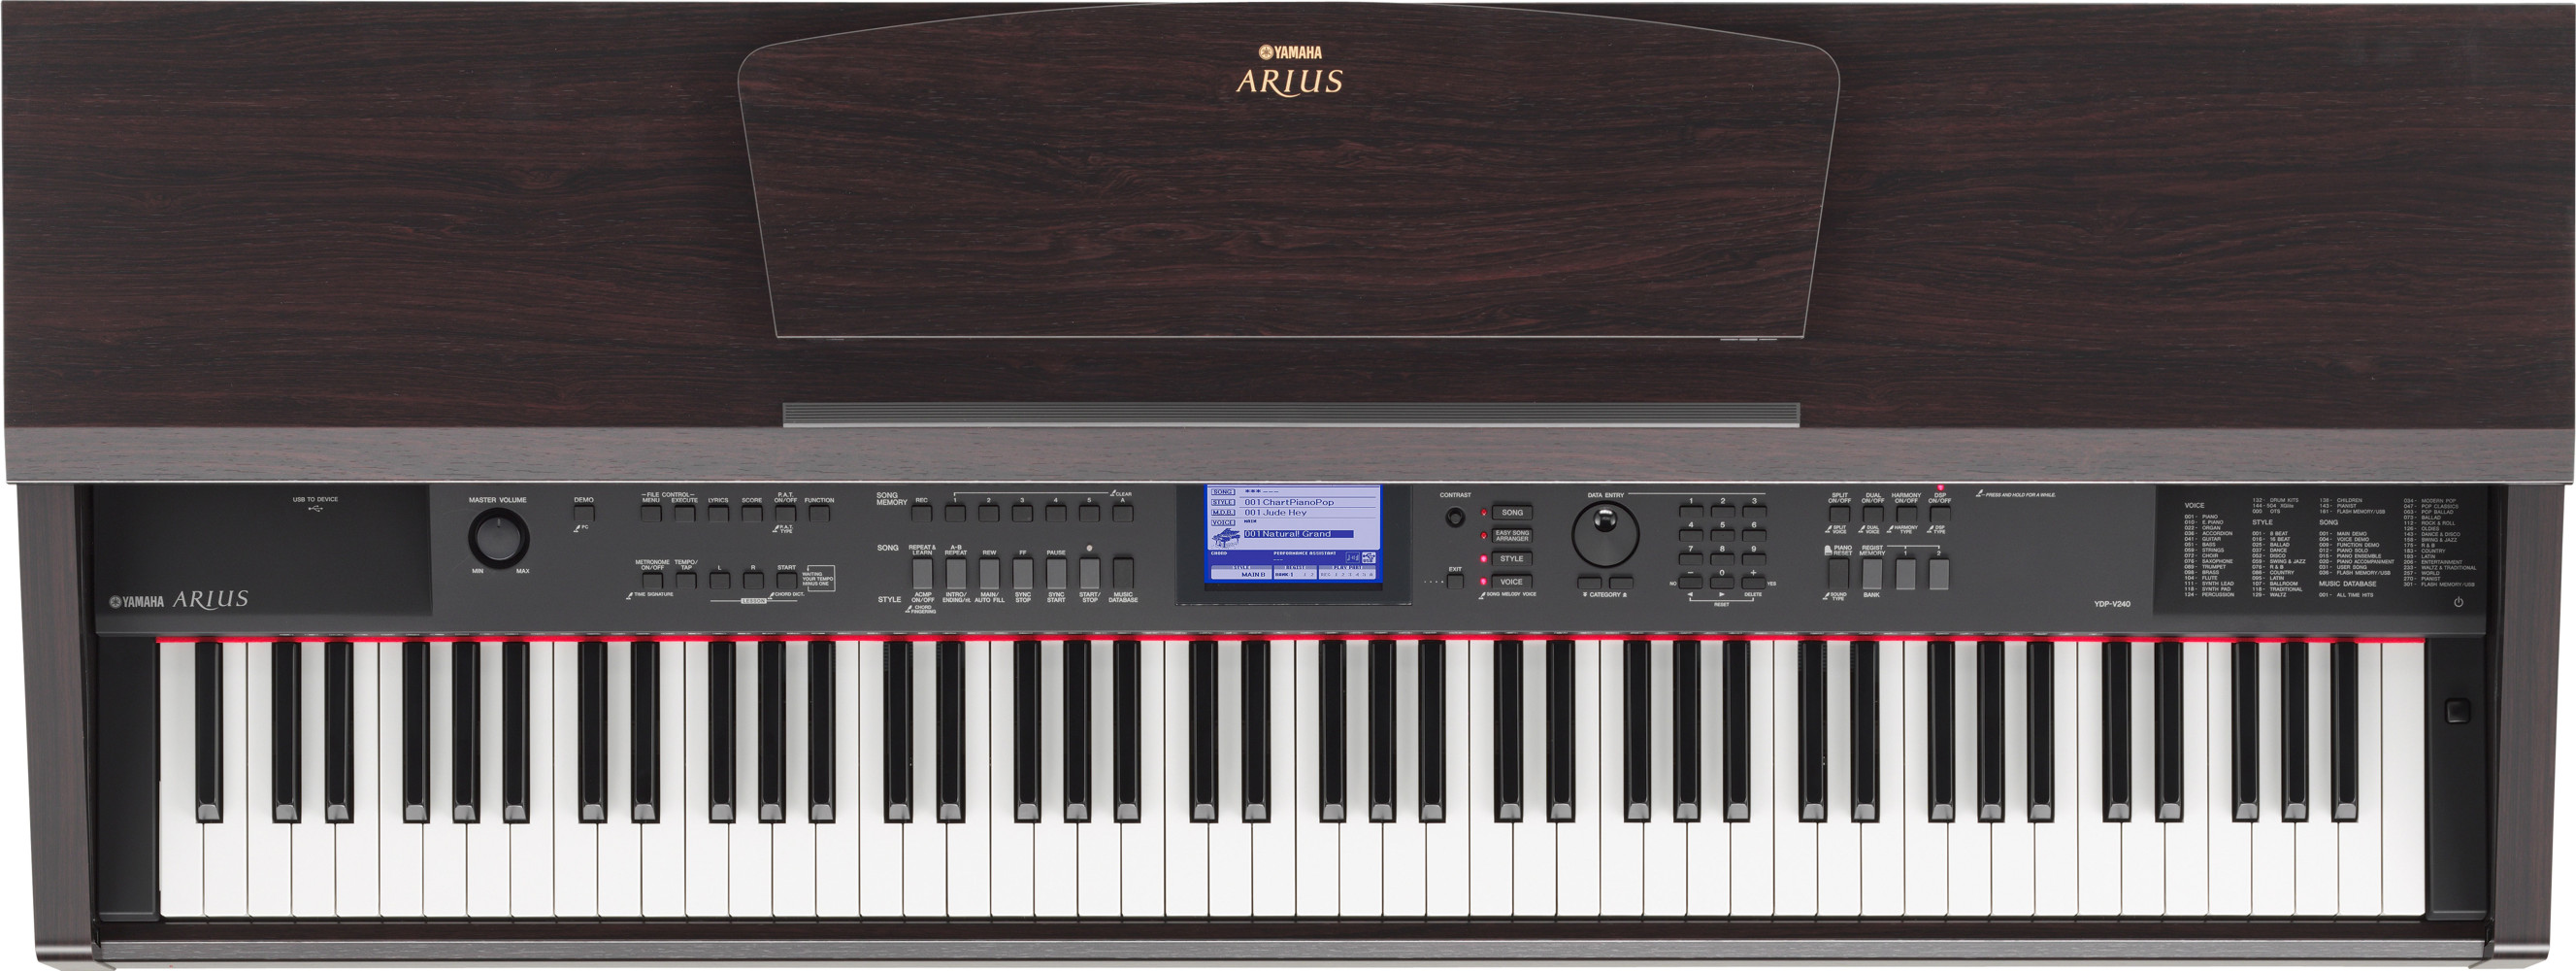 yamaha arius ydp v240 review why this keyboard is so good. Black Bedroom Furniture Sets. Home Design Ideas